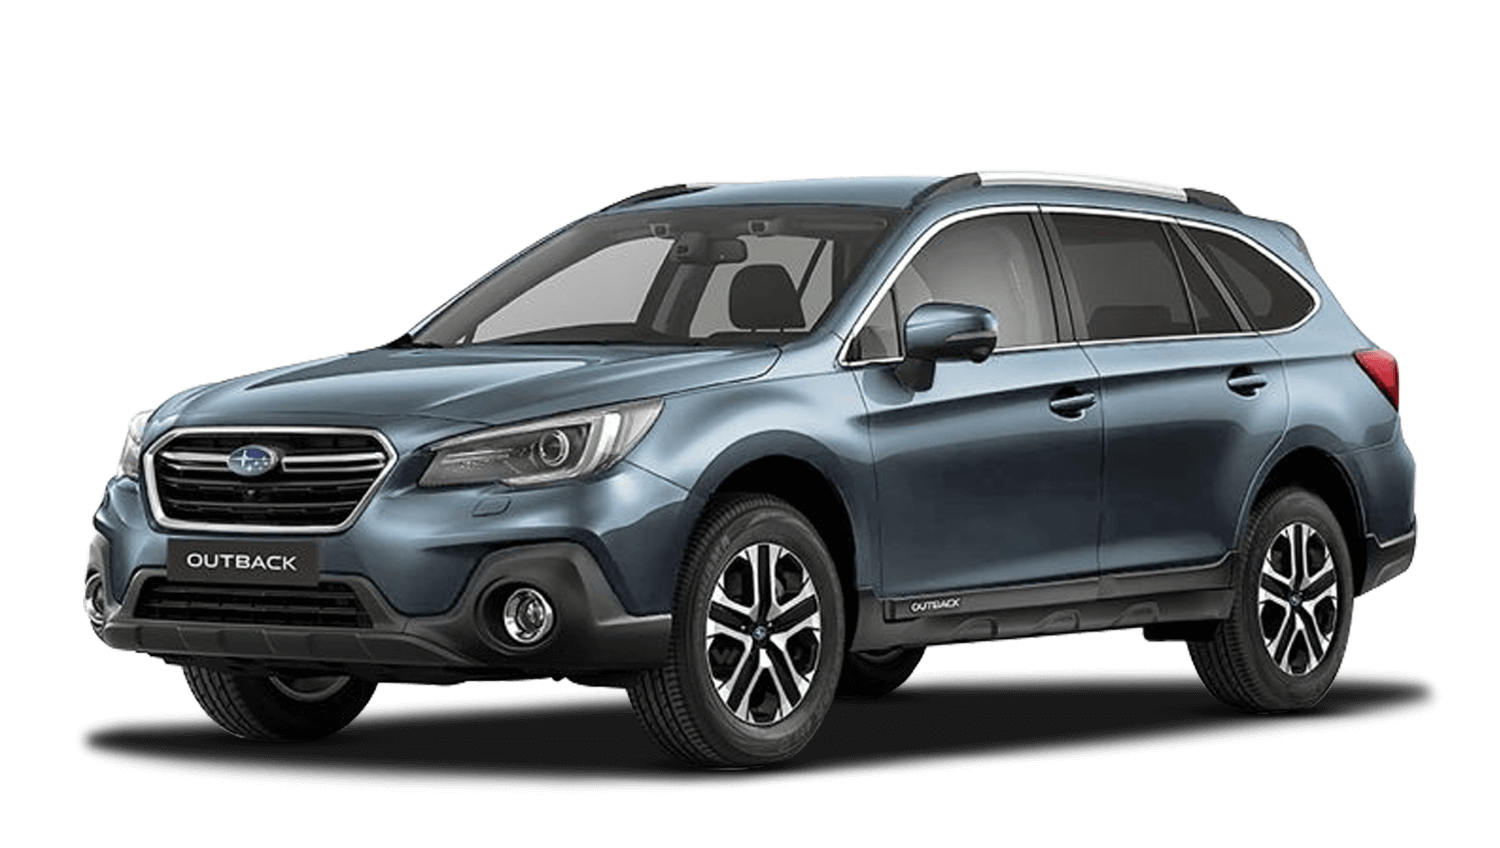 Storm Grey Metallic Subaru Outback